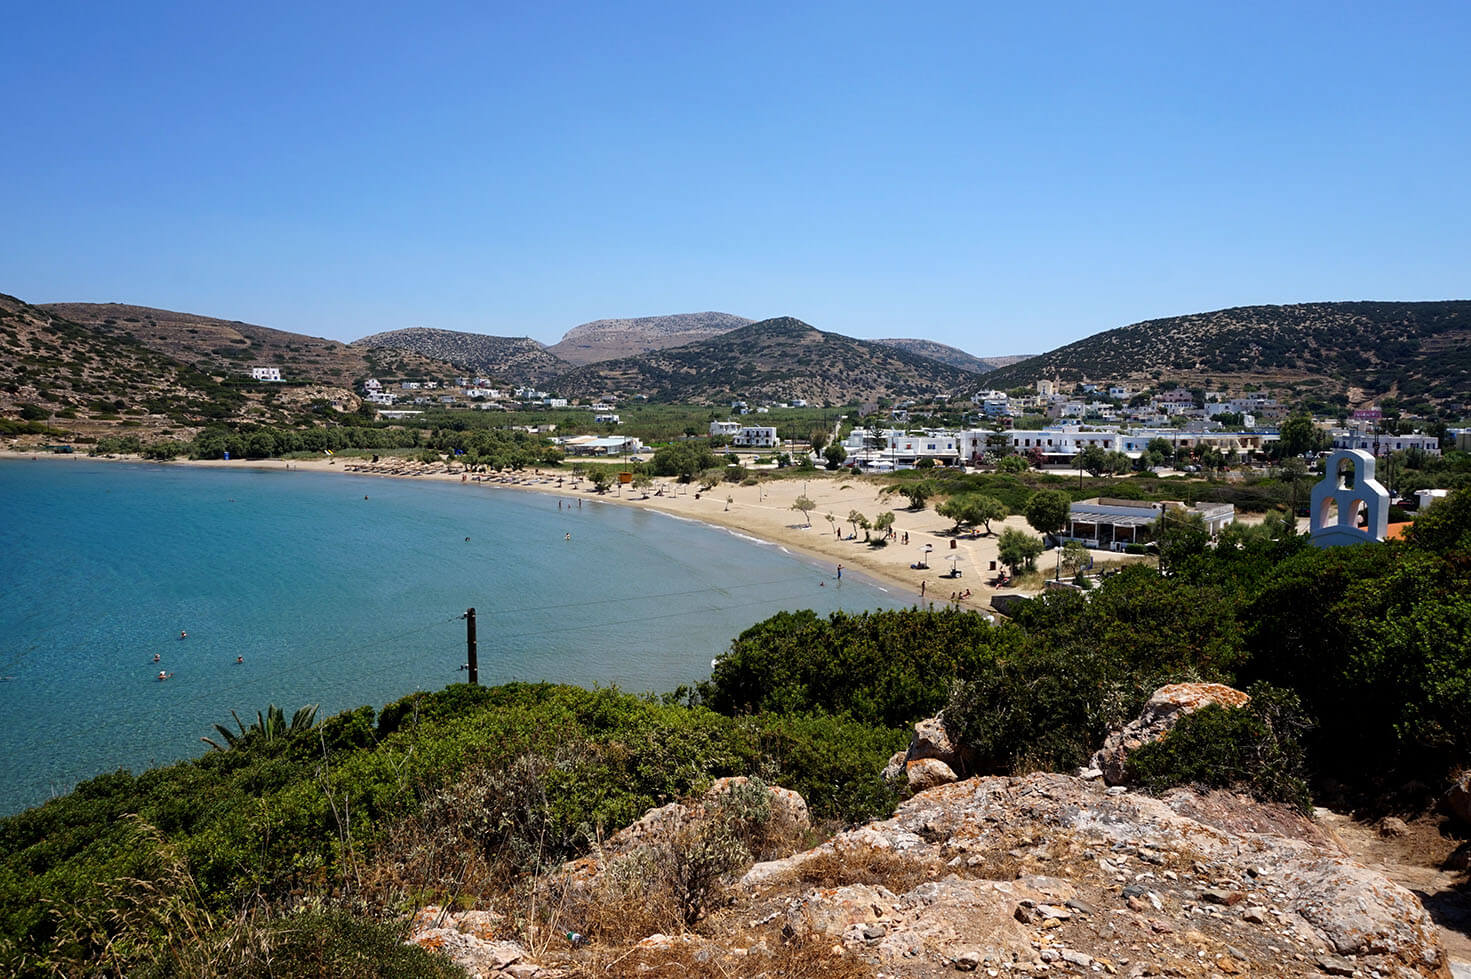 One of the best beaches in Greece - Galissas